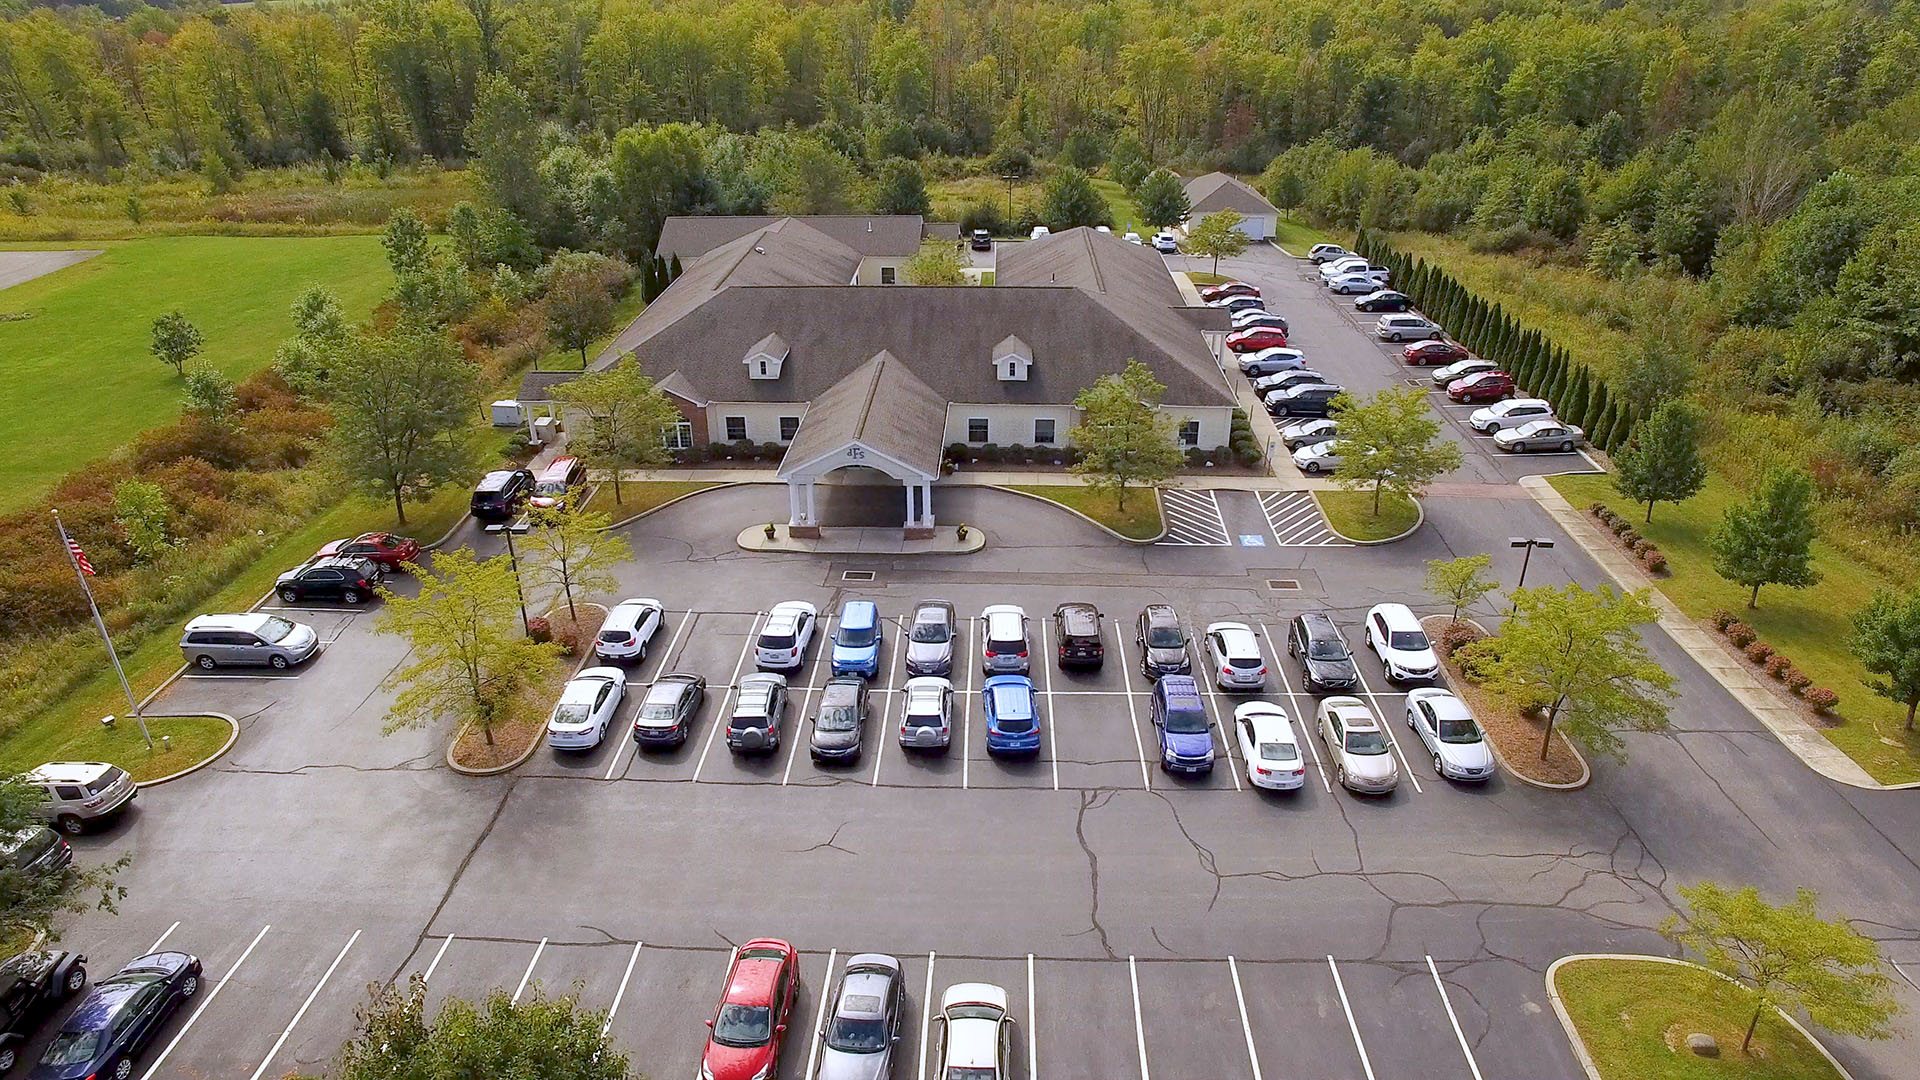 dFs building aerial image